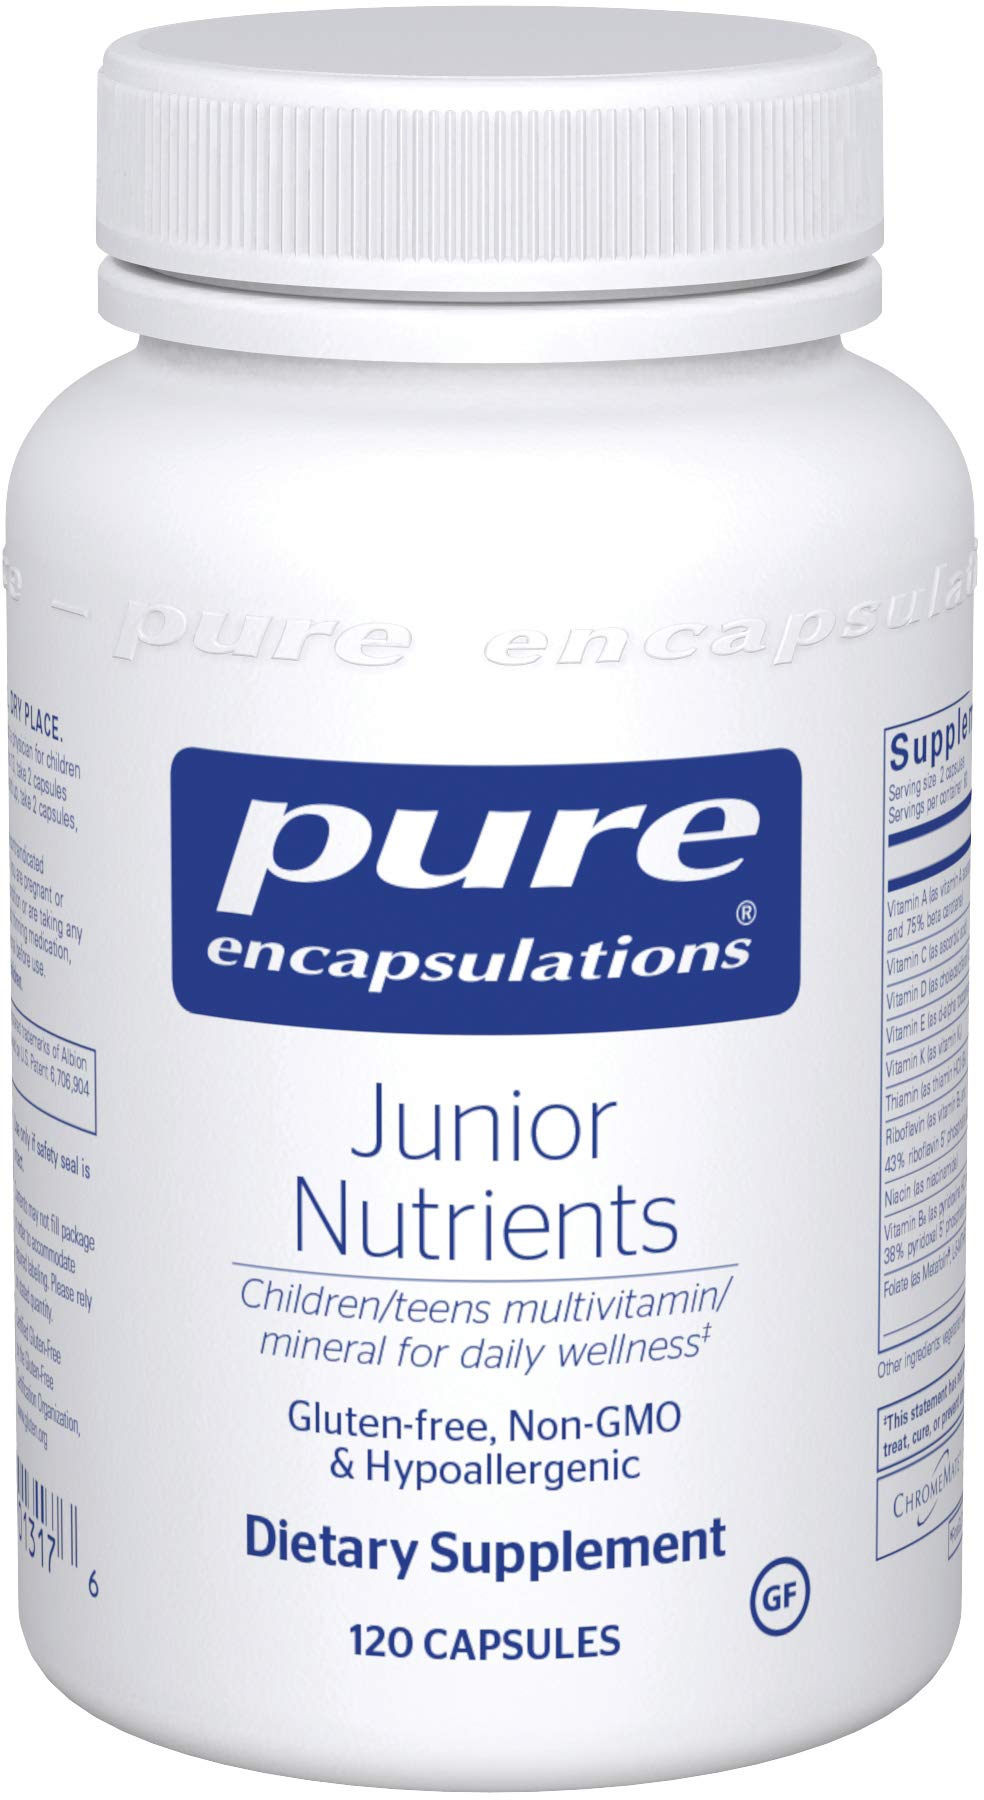 Pure Encapsulations Junior Nutrients | Multivitamin and Mineral Supplement Without Iron for Children Ages 4 and Up* | 120 Capsules